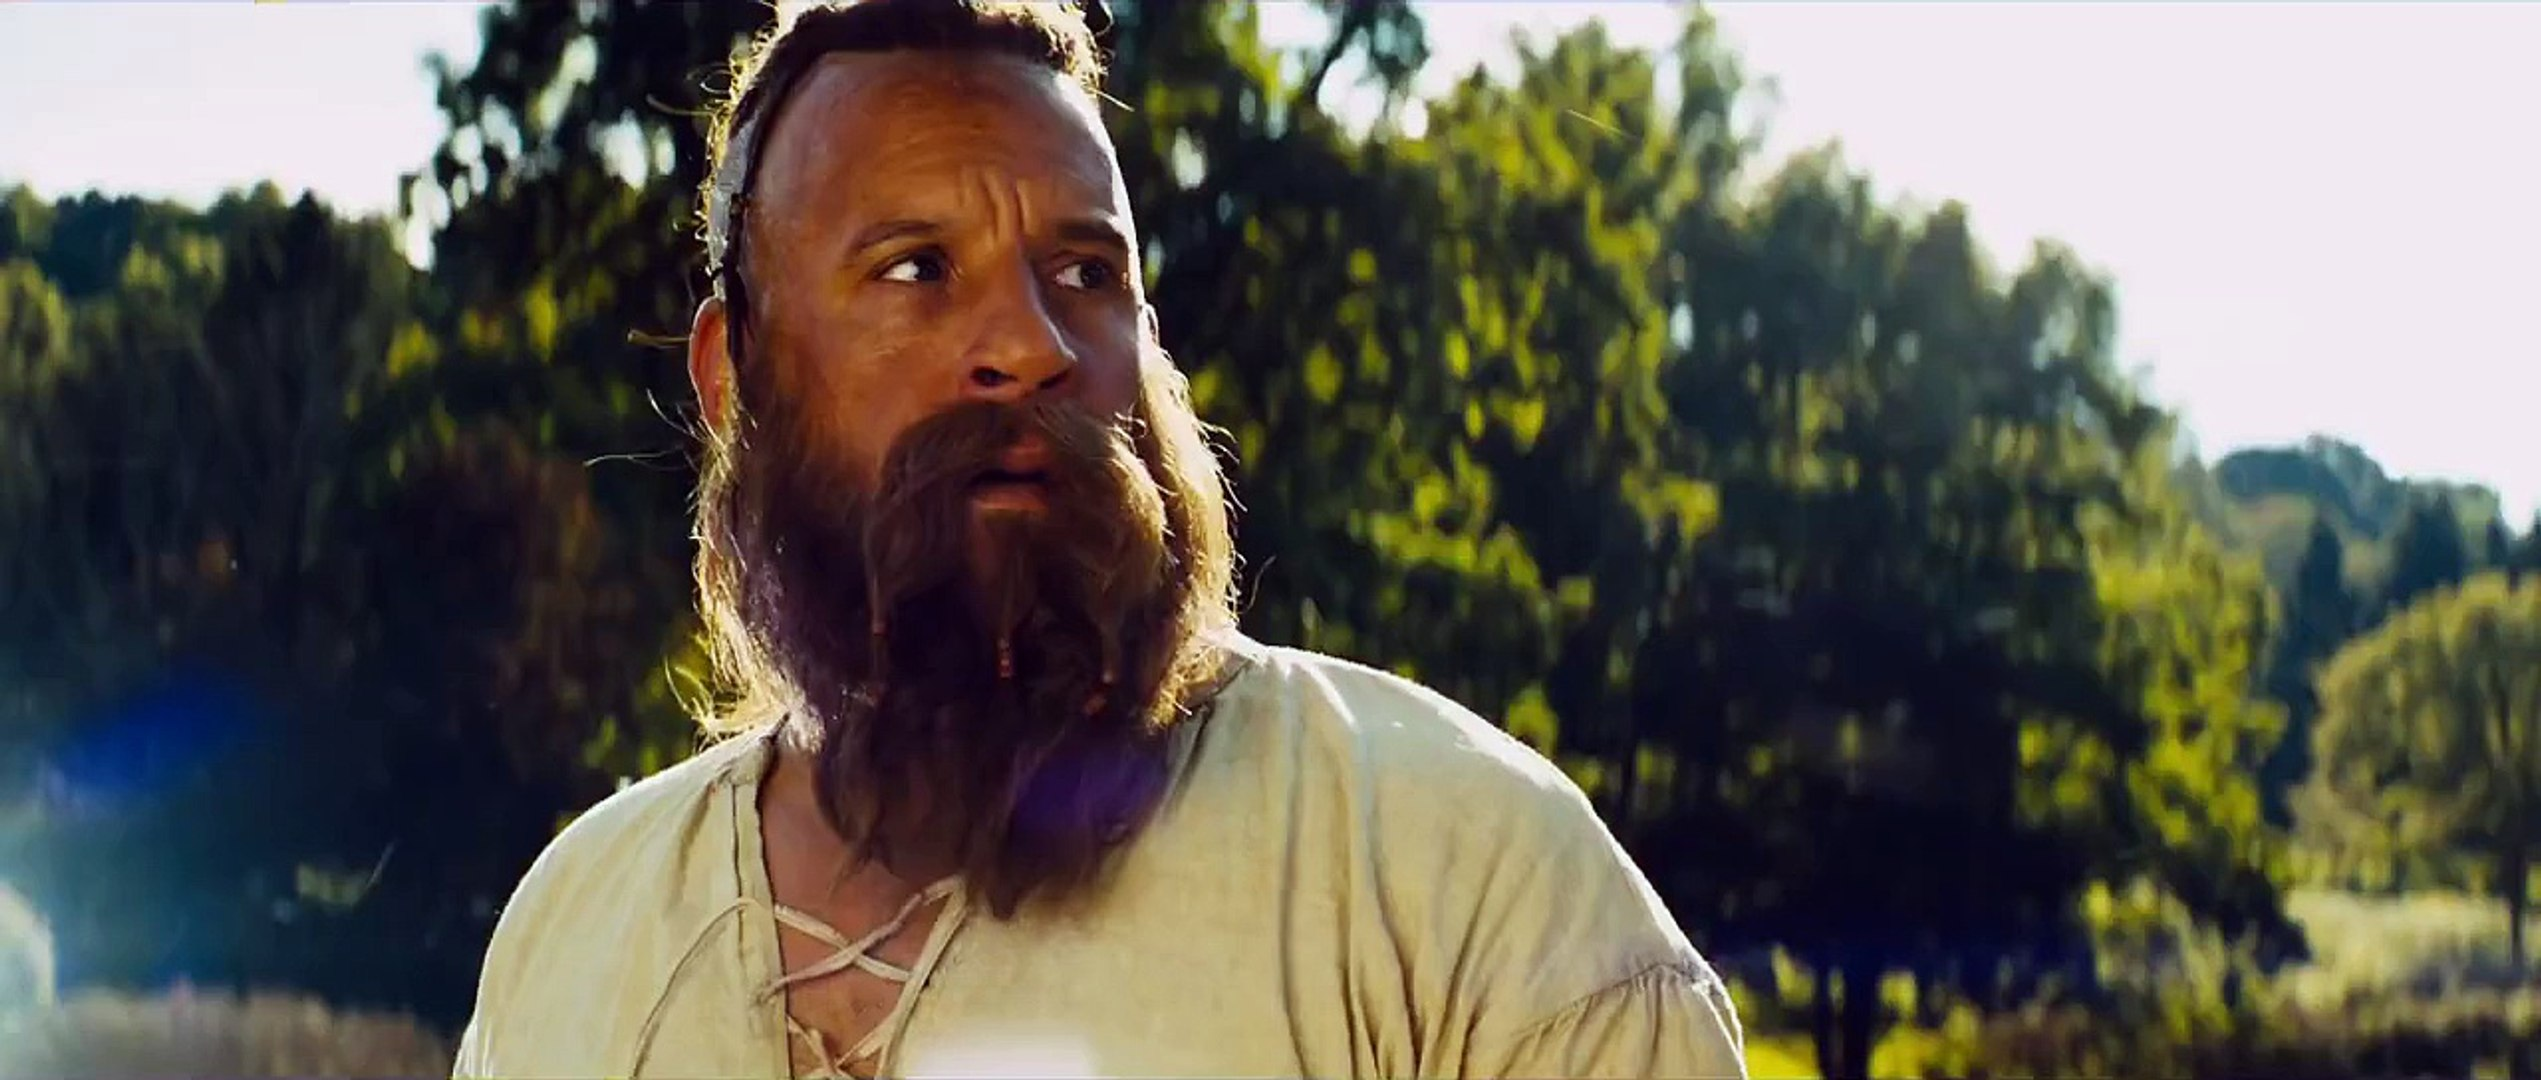 The Last Witch Hunter Official Trailer #1 (2015) Vin Diesel, Michael Caine Fantasy Action